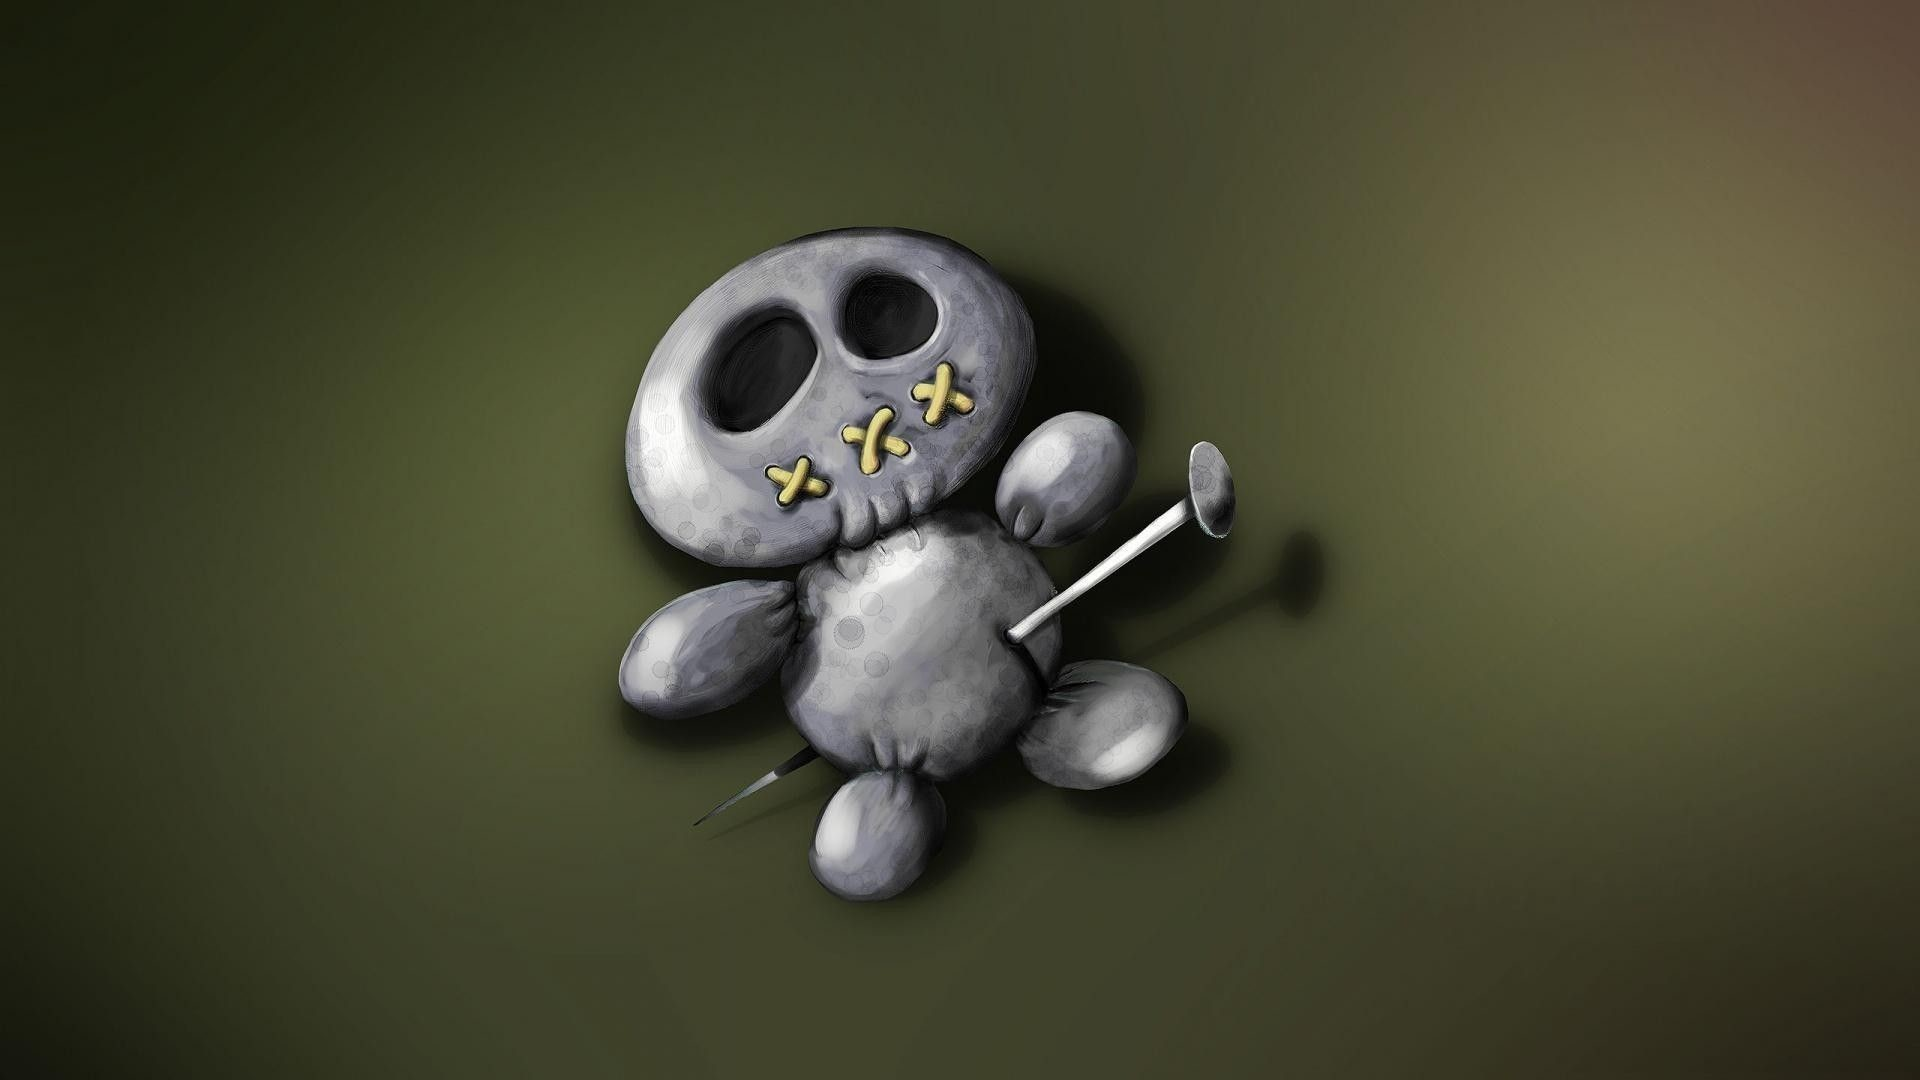 Res: 1920x1080, Scary Wallpapers HD 1920×1080 Scary Wallpaper (48 Wallpapers) | Adorable  Wallpapers